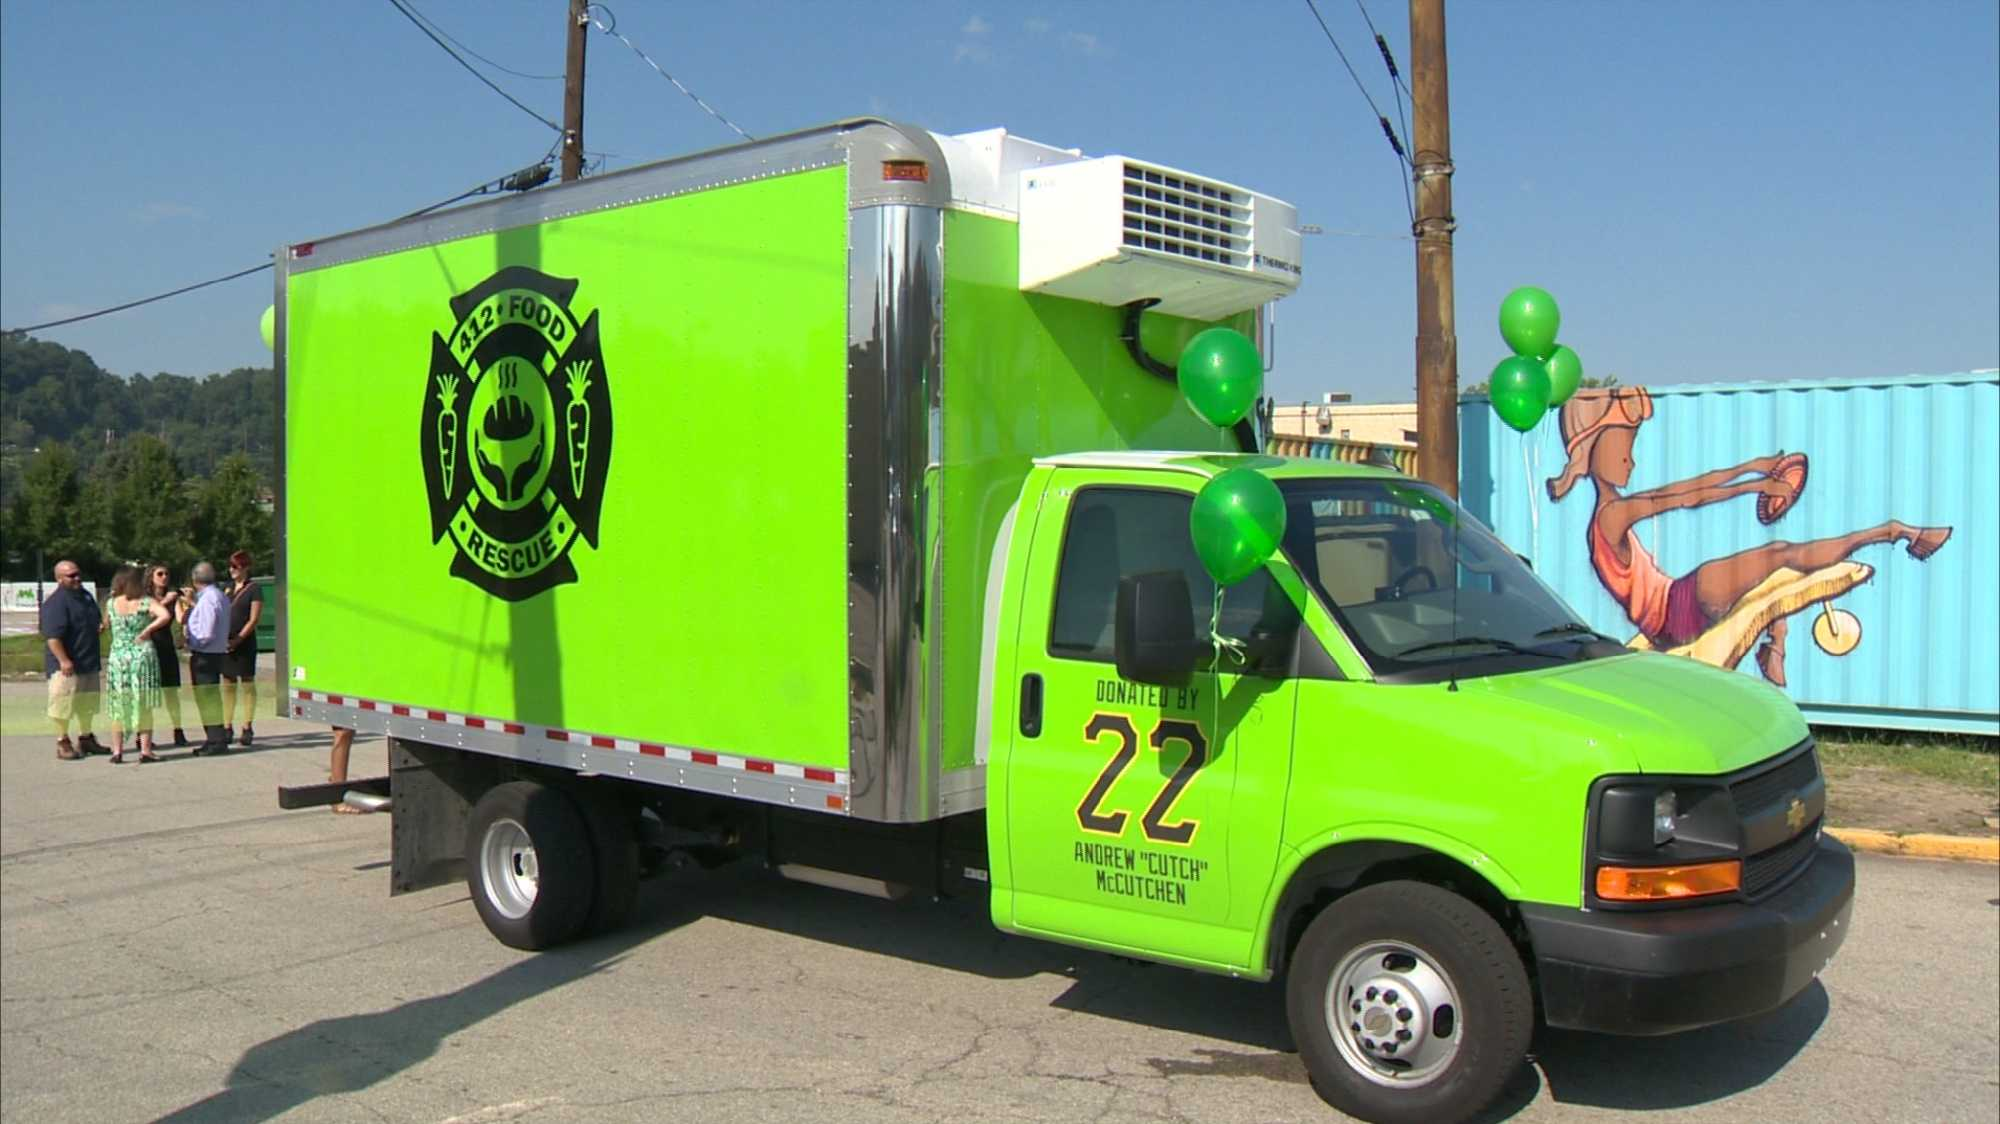 The 412 Food Rescue truck